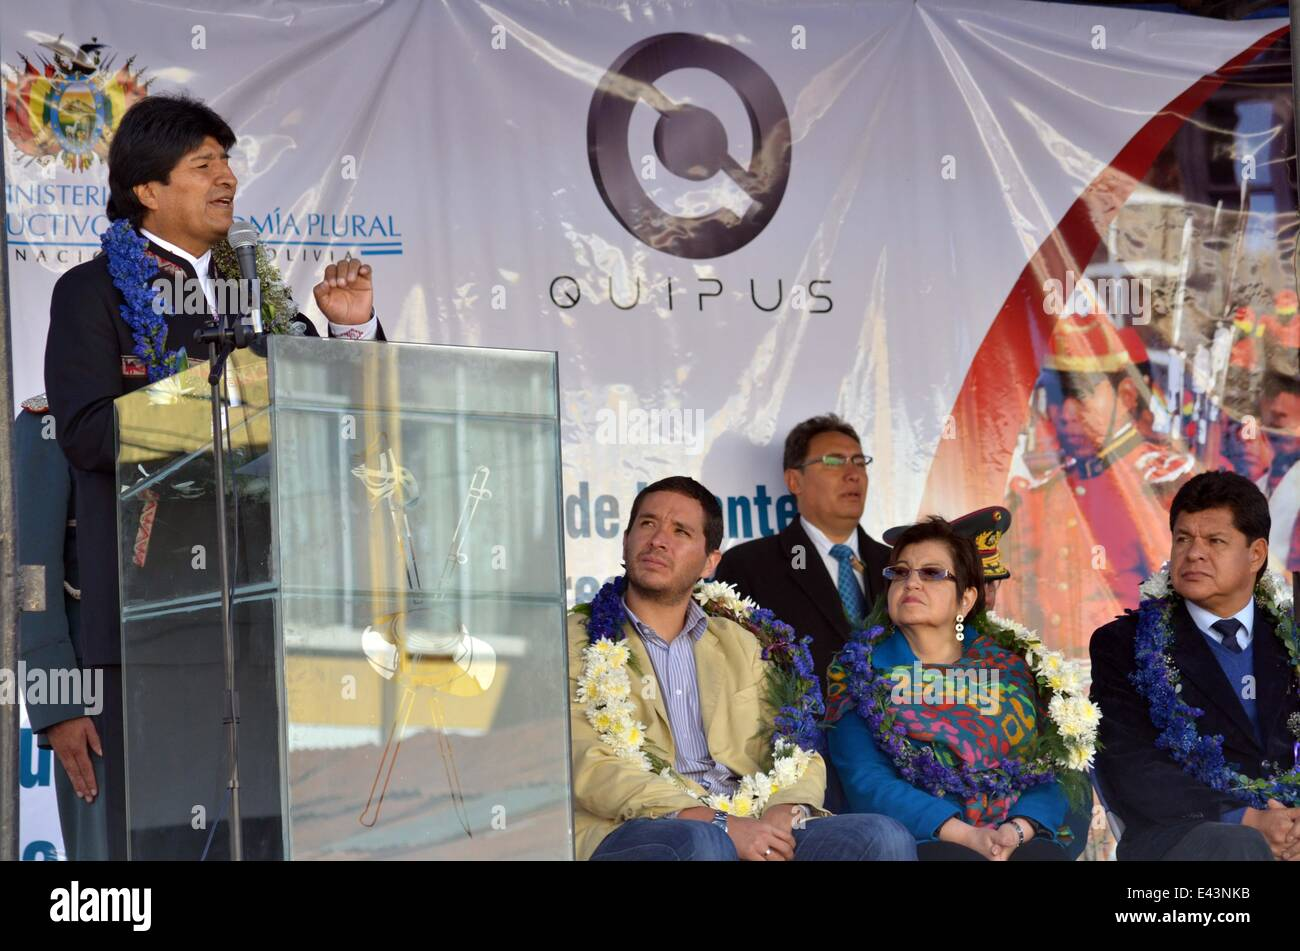 La Paz, Bolivia. 2nd July, 2014. Bolivian President Evo Morales (L) delivers a speech during the inauguration of - Stock Image